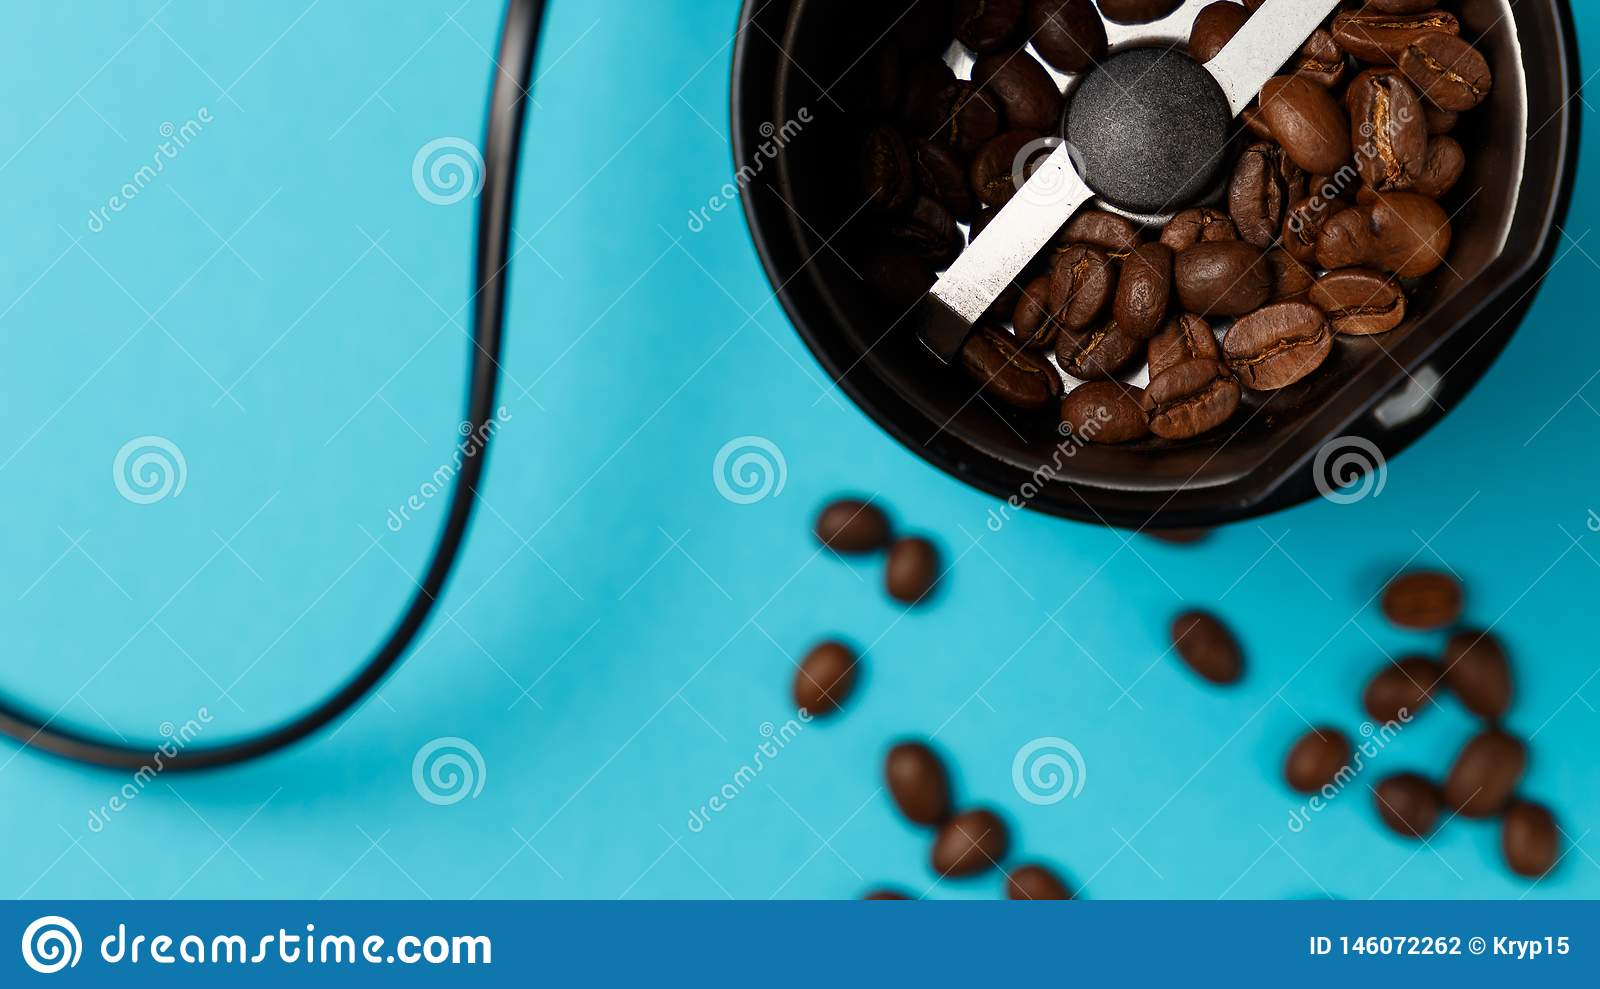 Electric coffee grinder with roasted coffee beans on the kitchen